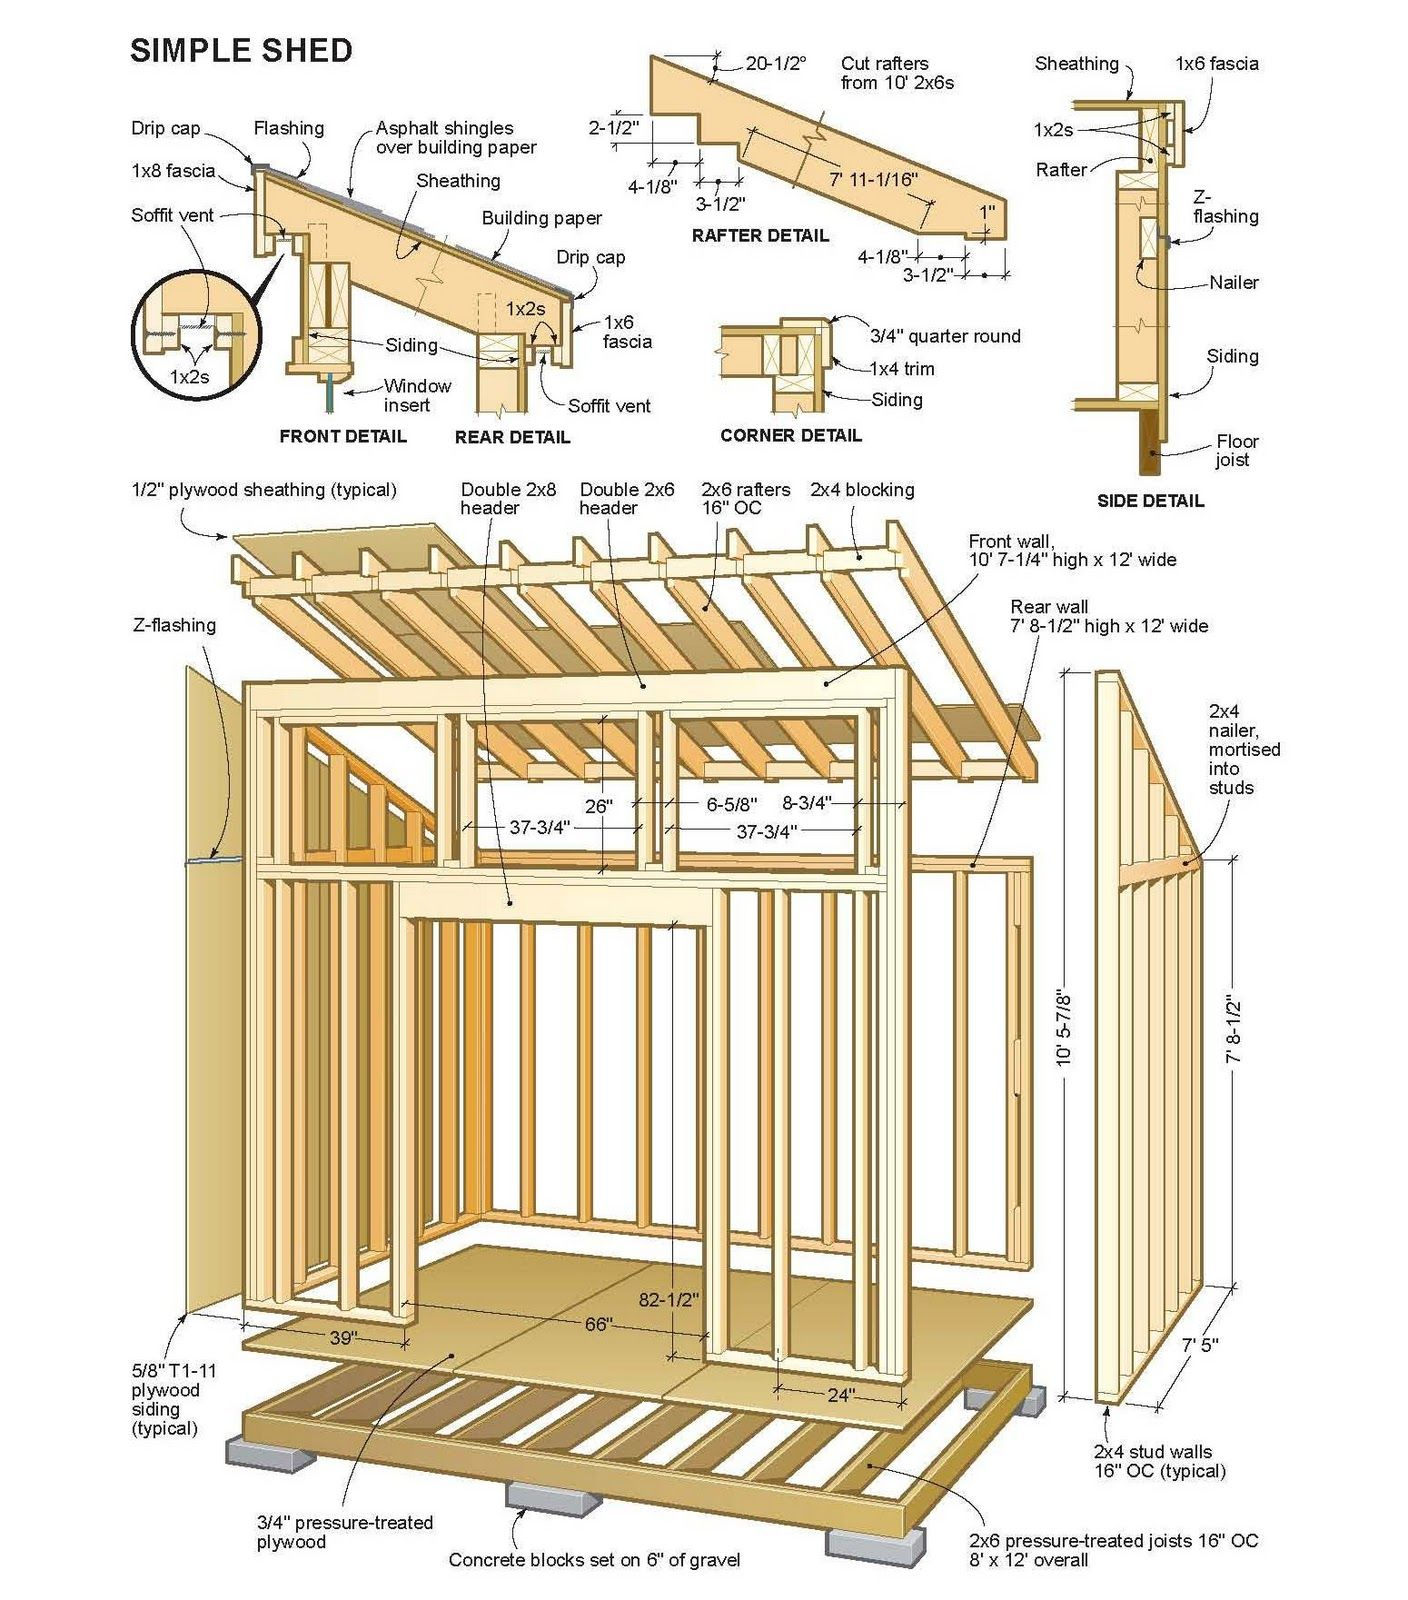 Shedfor 10x12 Gambrel Shed Plans Download Firefox Wood Shed Plans Simple Shed Diy Shed Plans